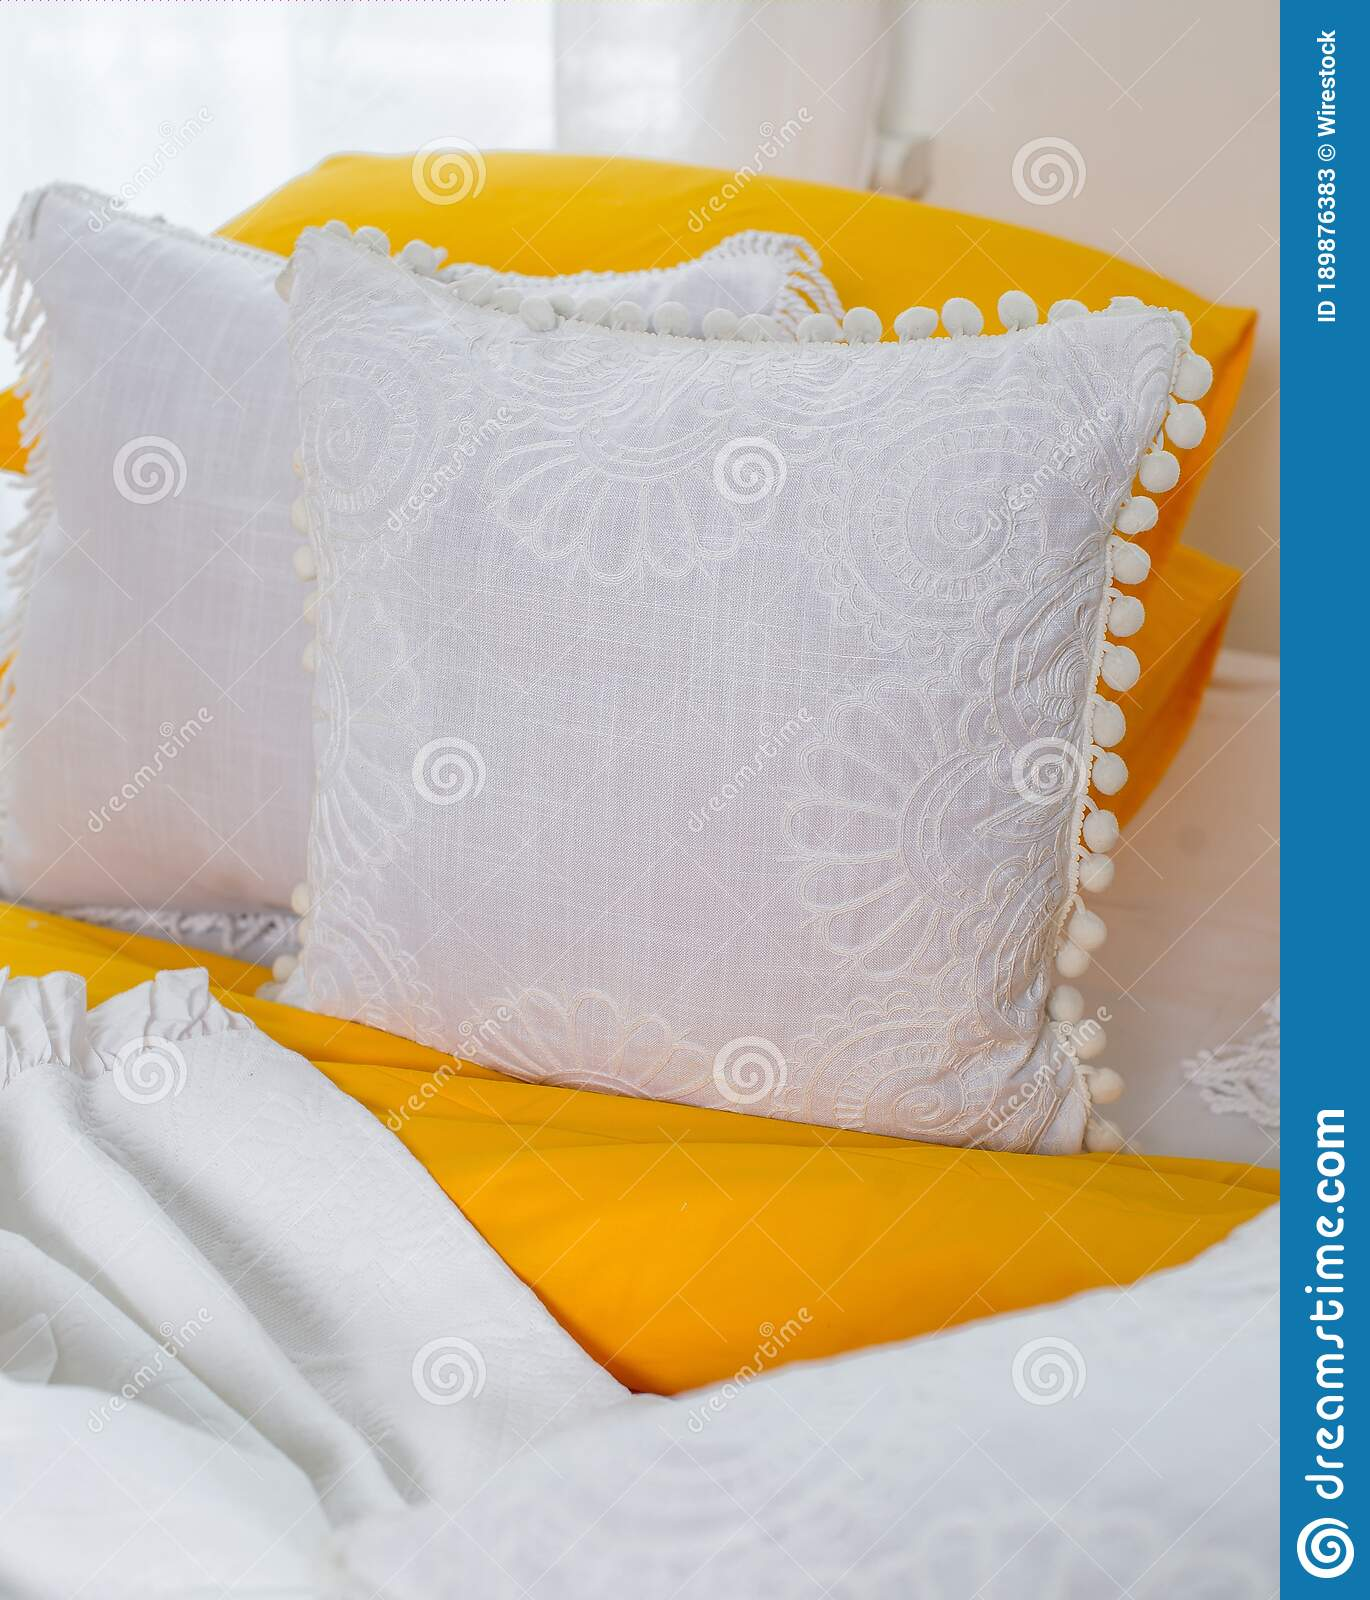 Yellow And White Decorative Pillows In The Bedroom Stock Image Image Of Indoors White 189876383